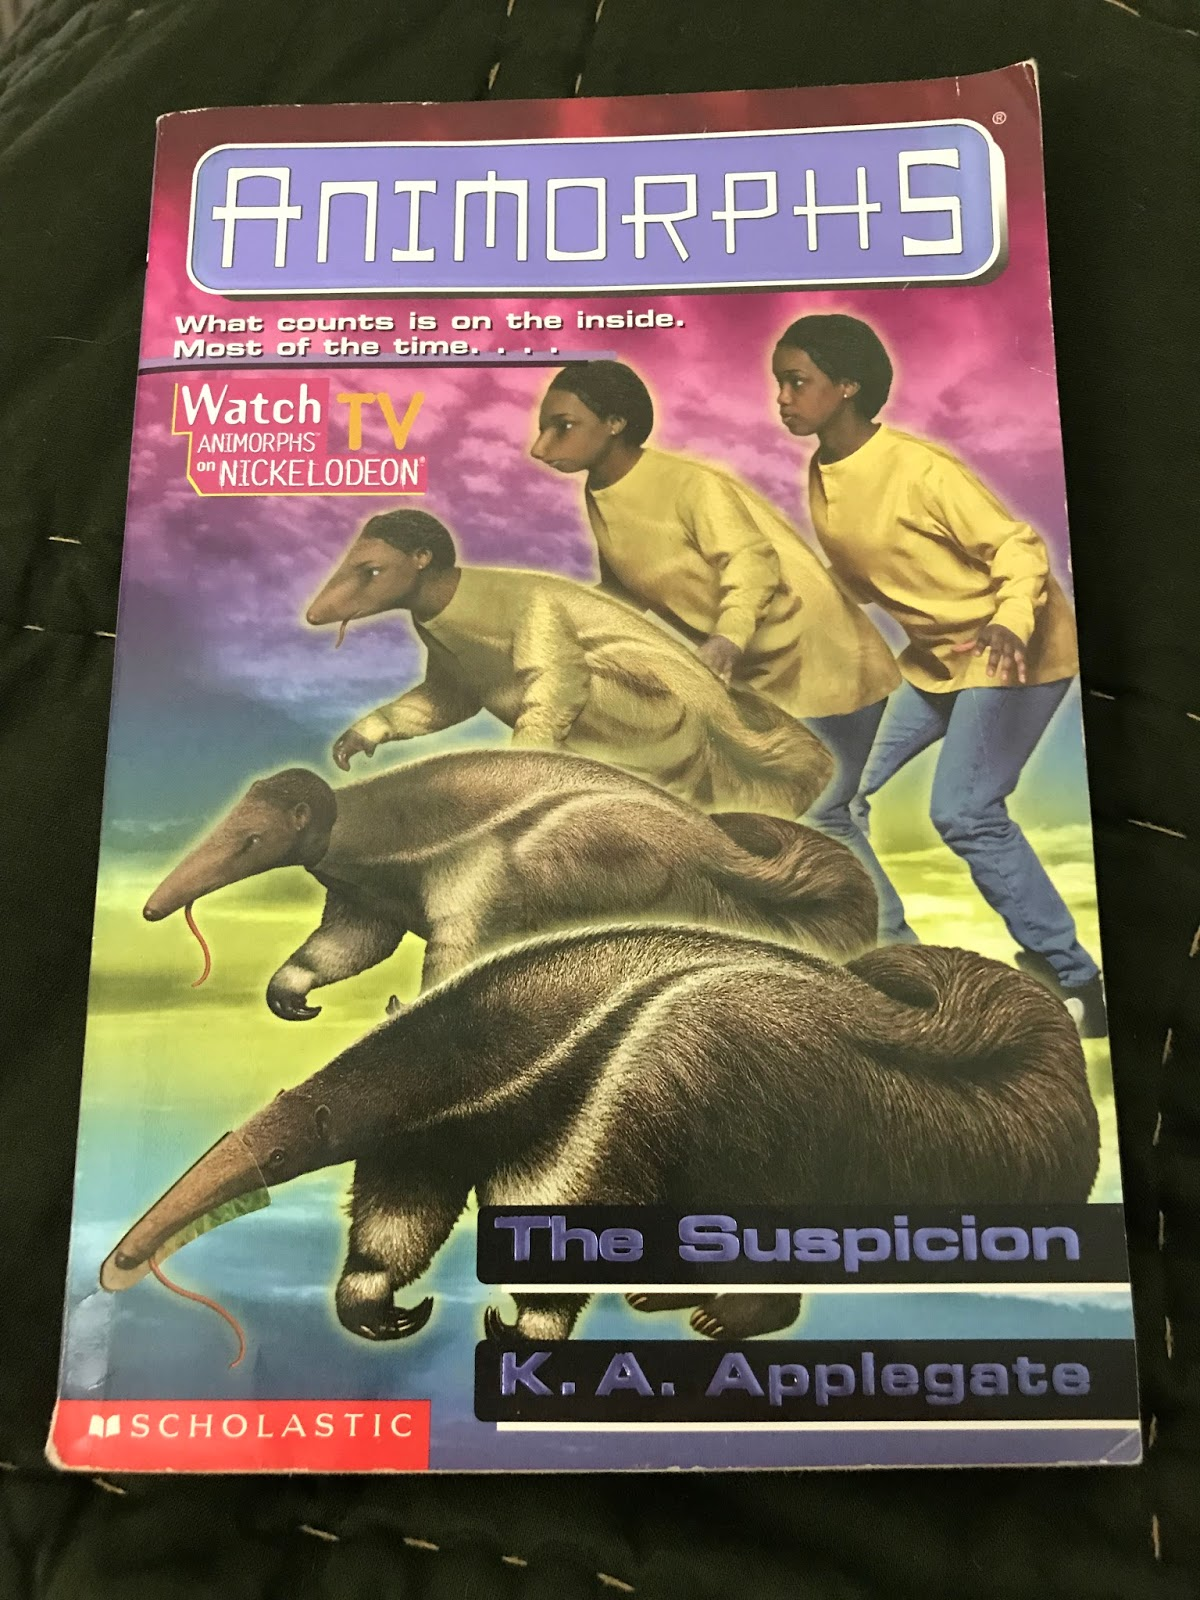 Honey I Shrunk The Animorphs Cantonaut